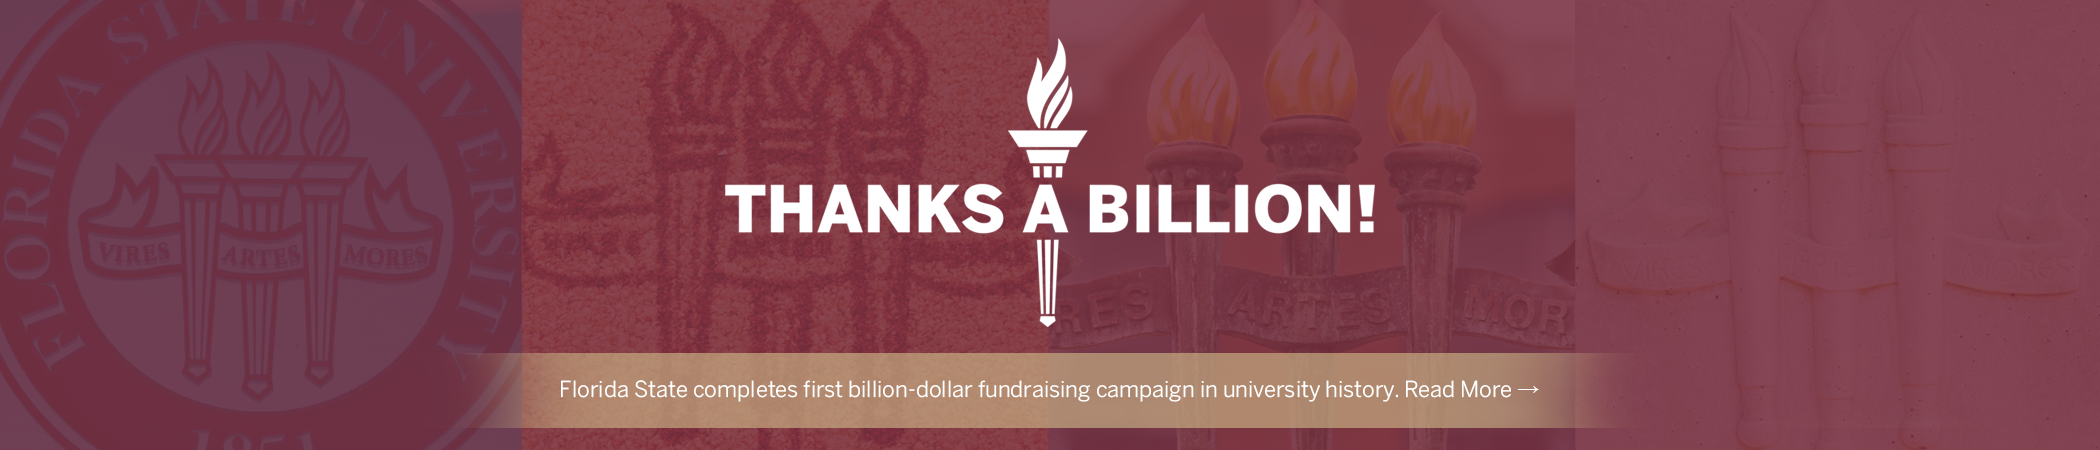 Florida State completes first billion-dollar fundraising campaign in university history. Read More →